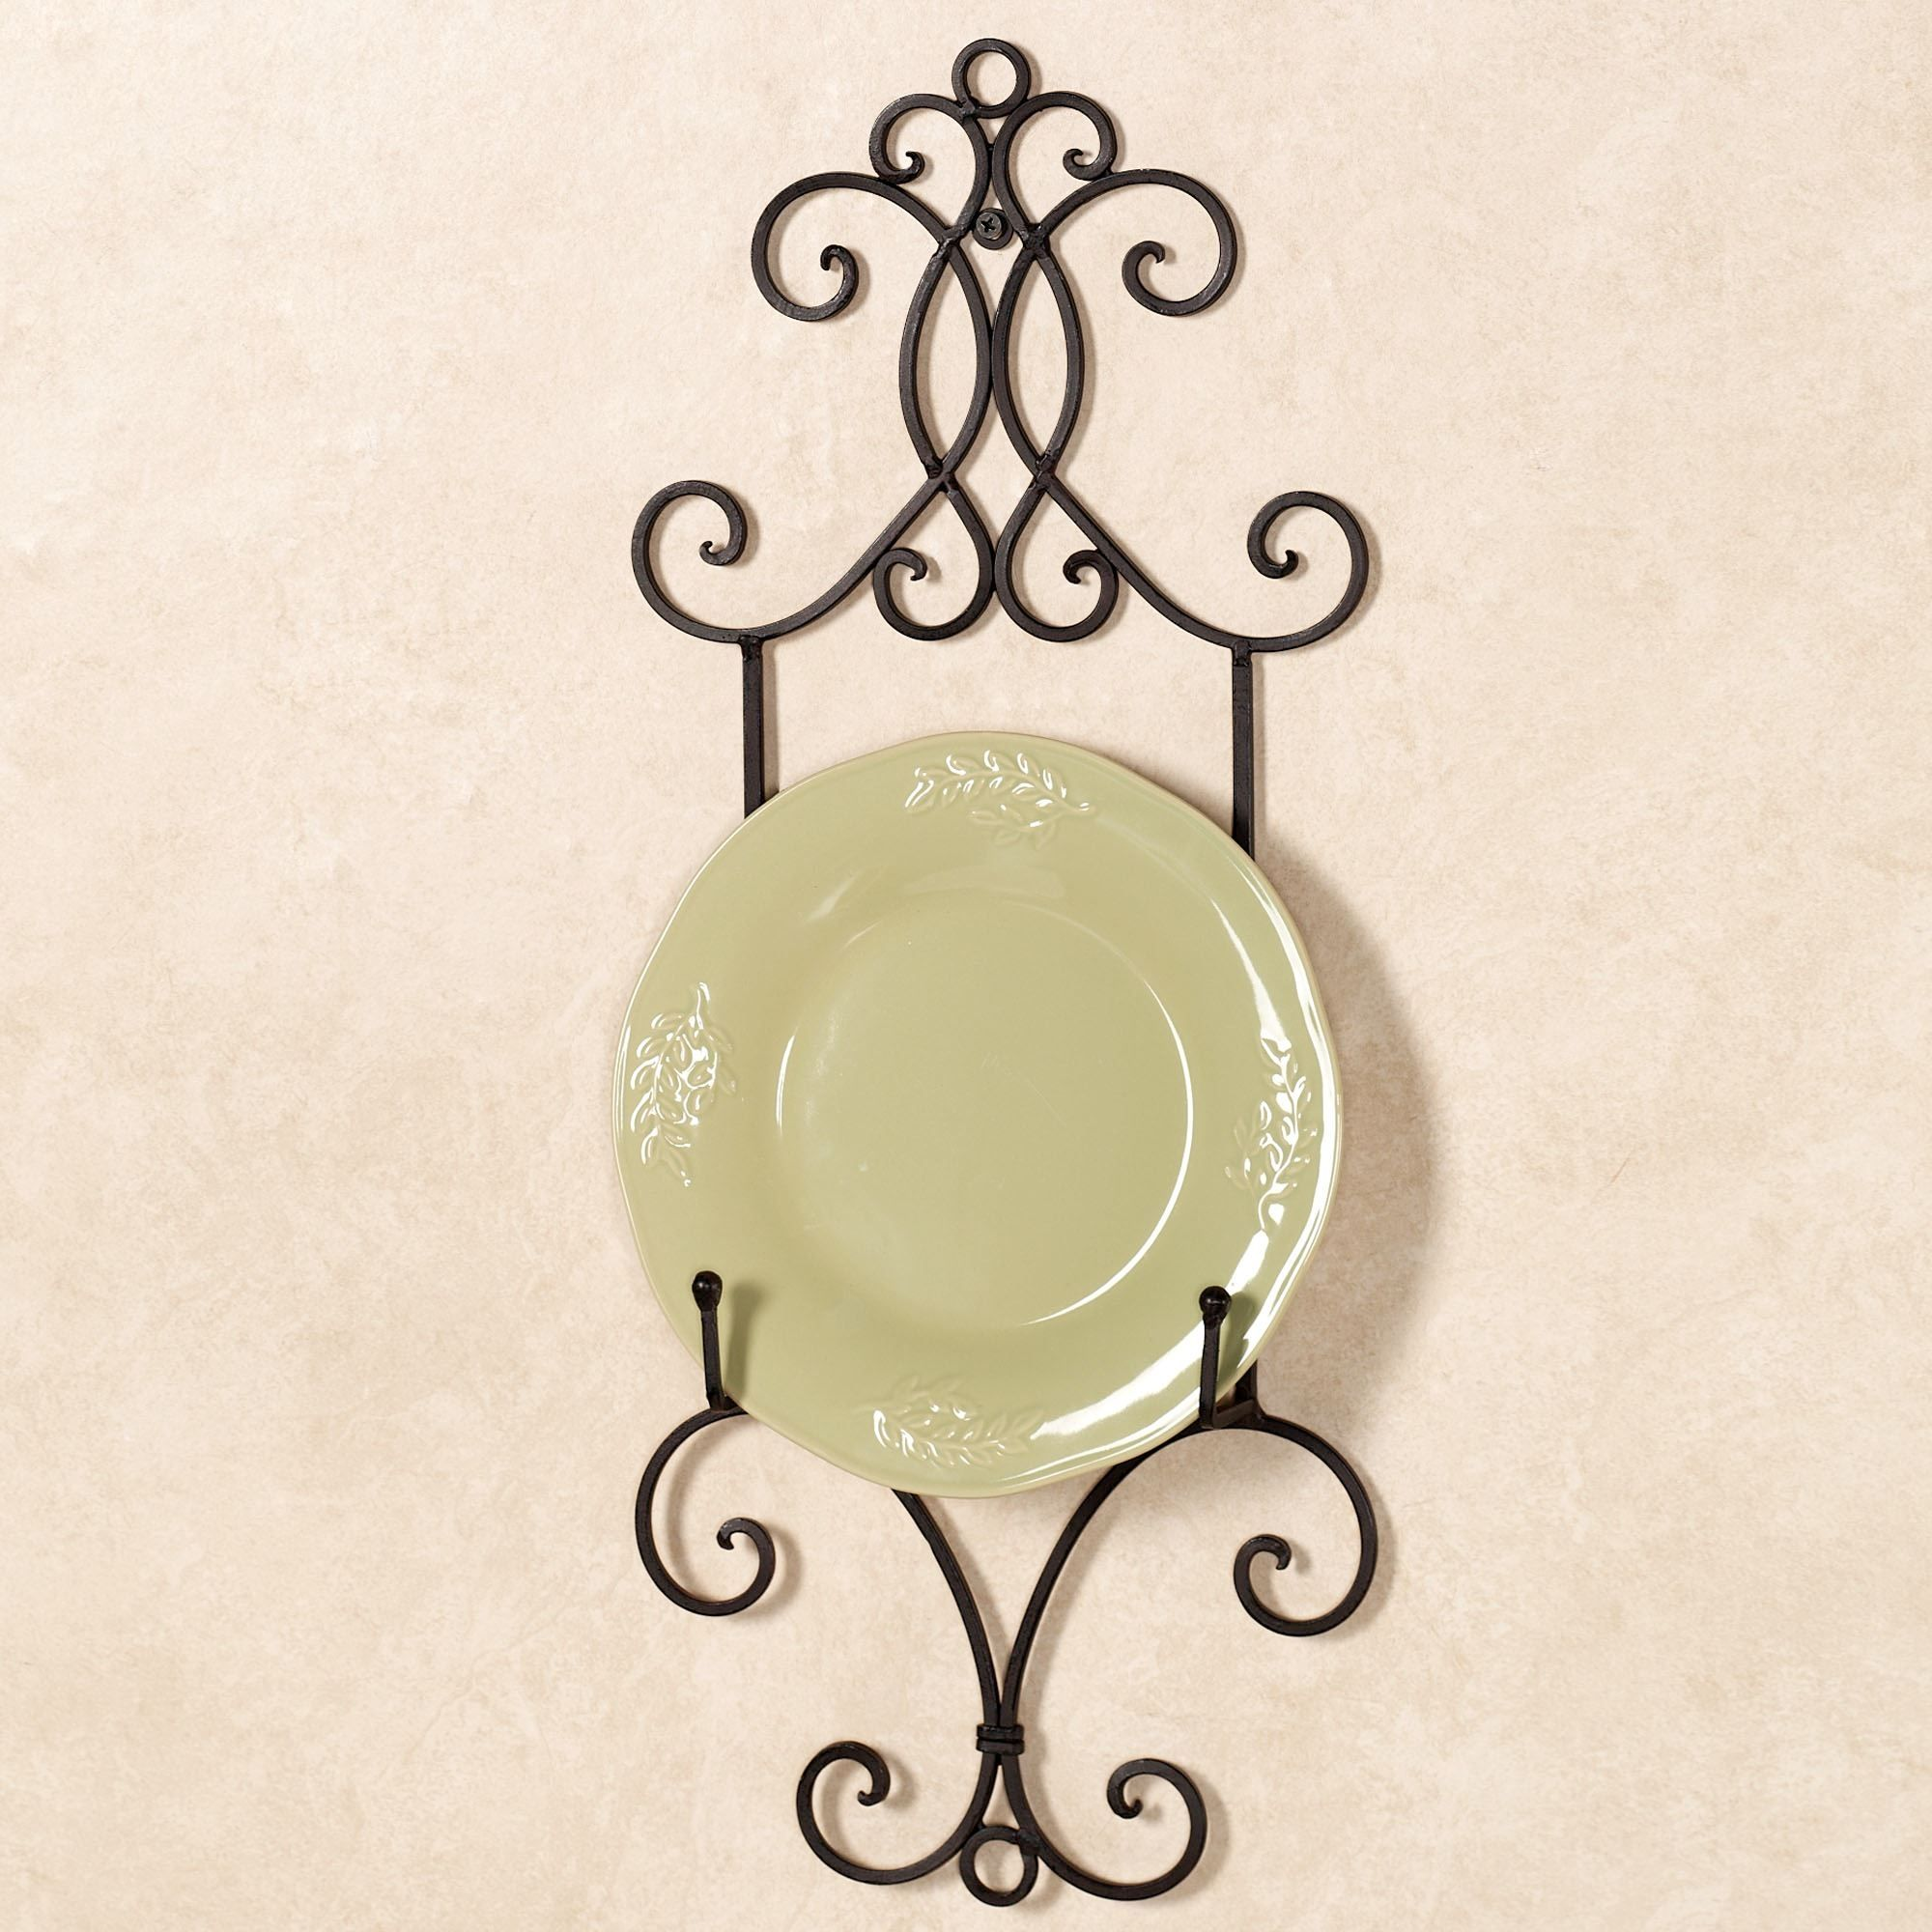 Kitchen Wall Plate Hanger | http://yonkou-tei.net | Pinterest ...